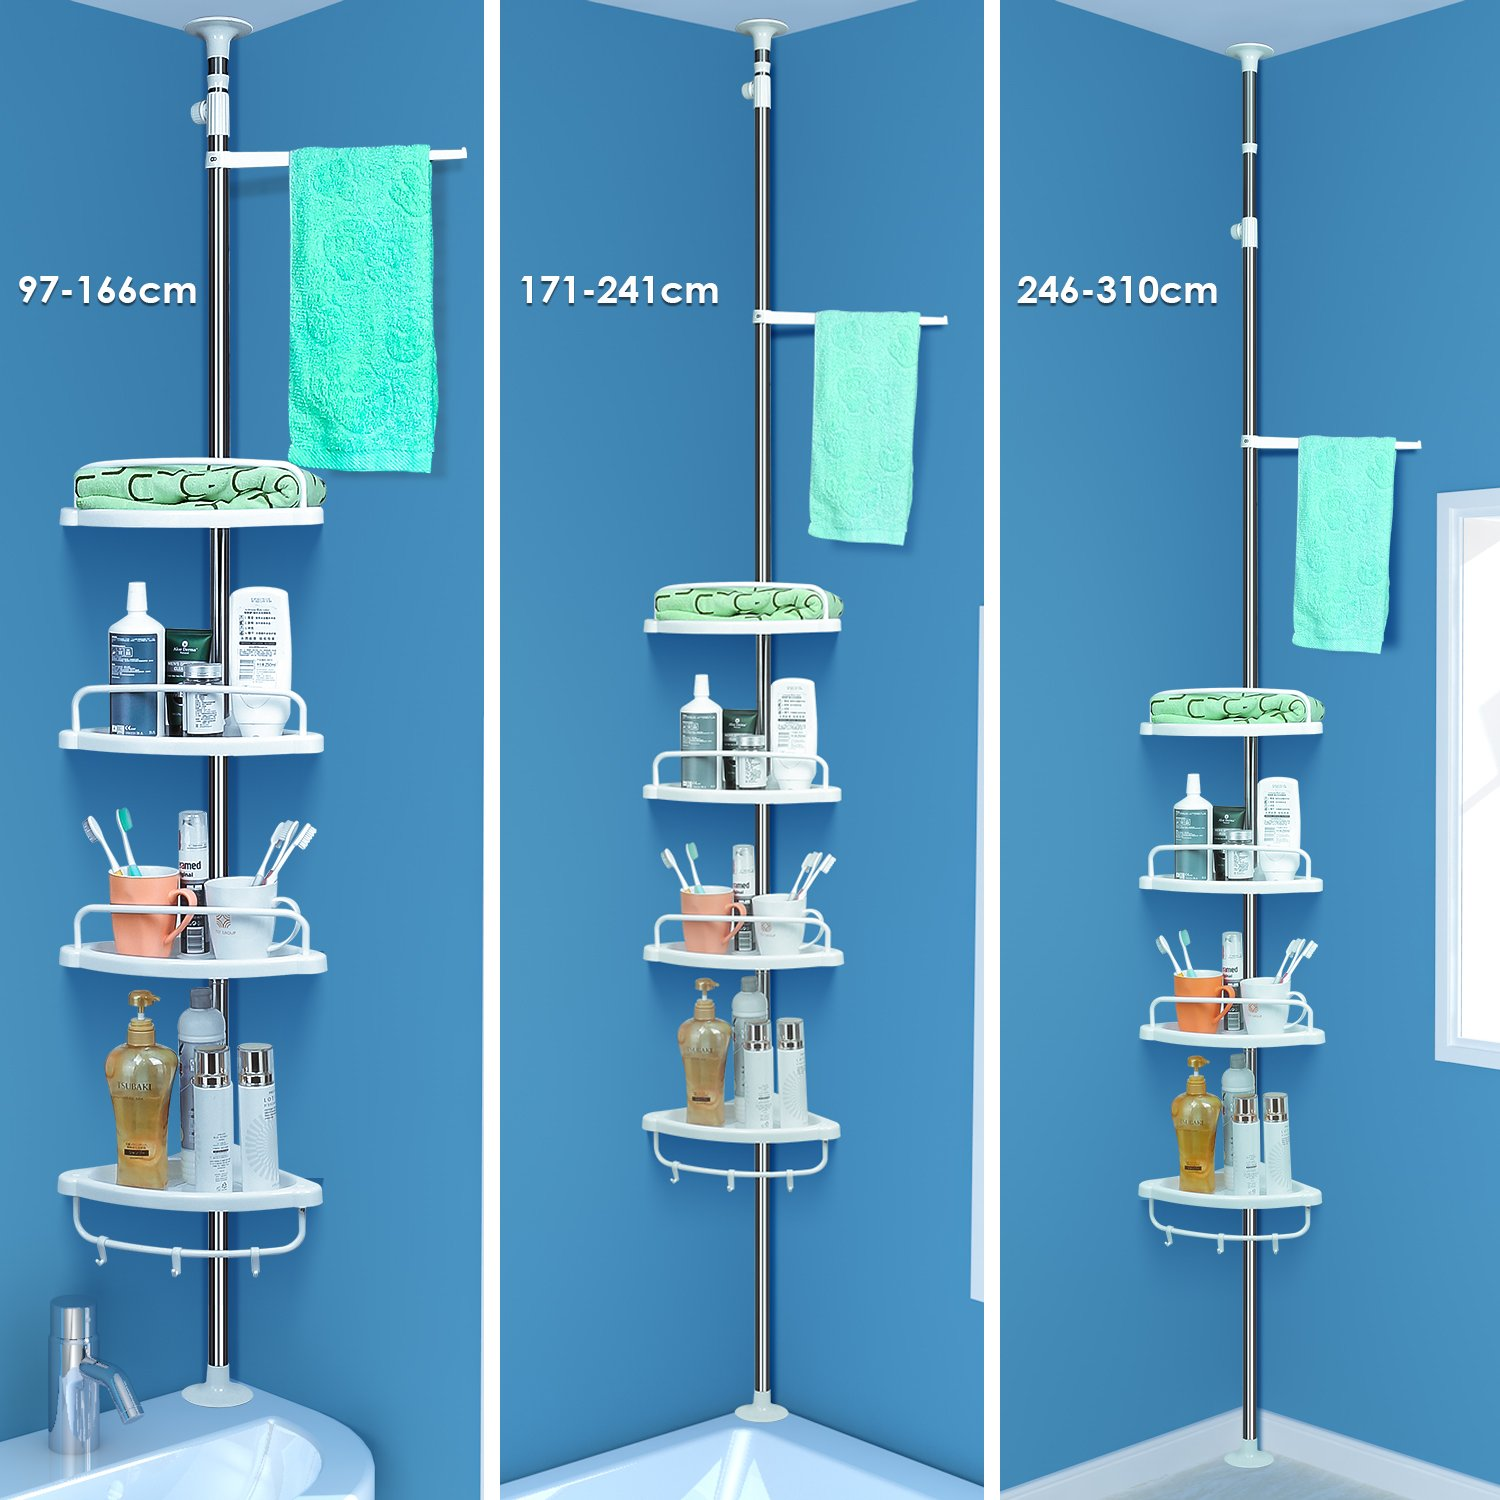 HOMFA Shower Shelf Bathroom Corner Rack Stand 4 Tier Adjustable ...